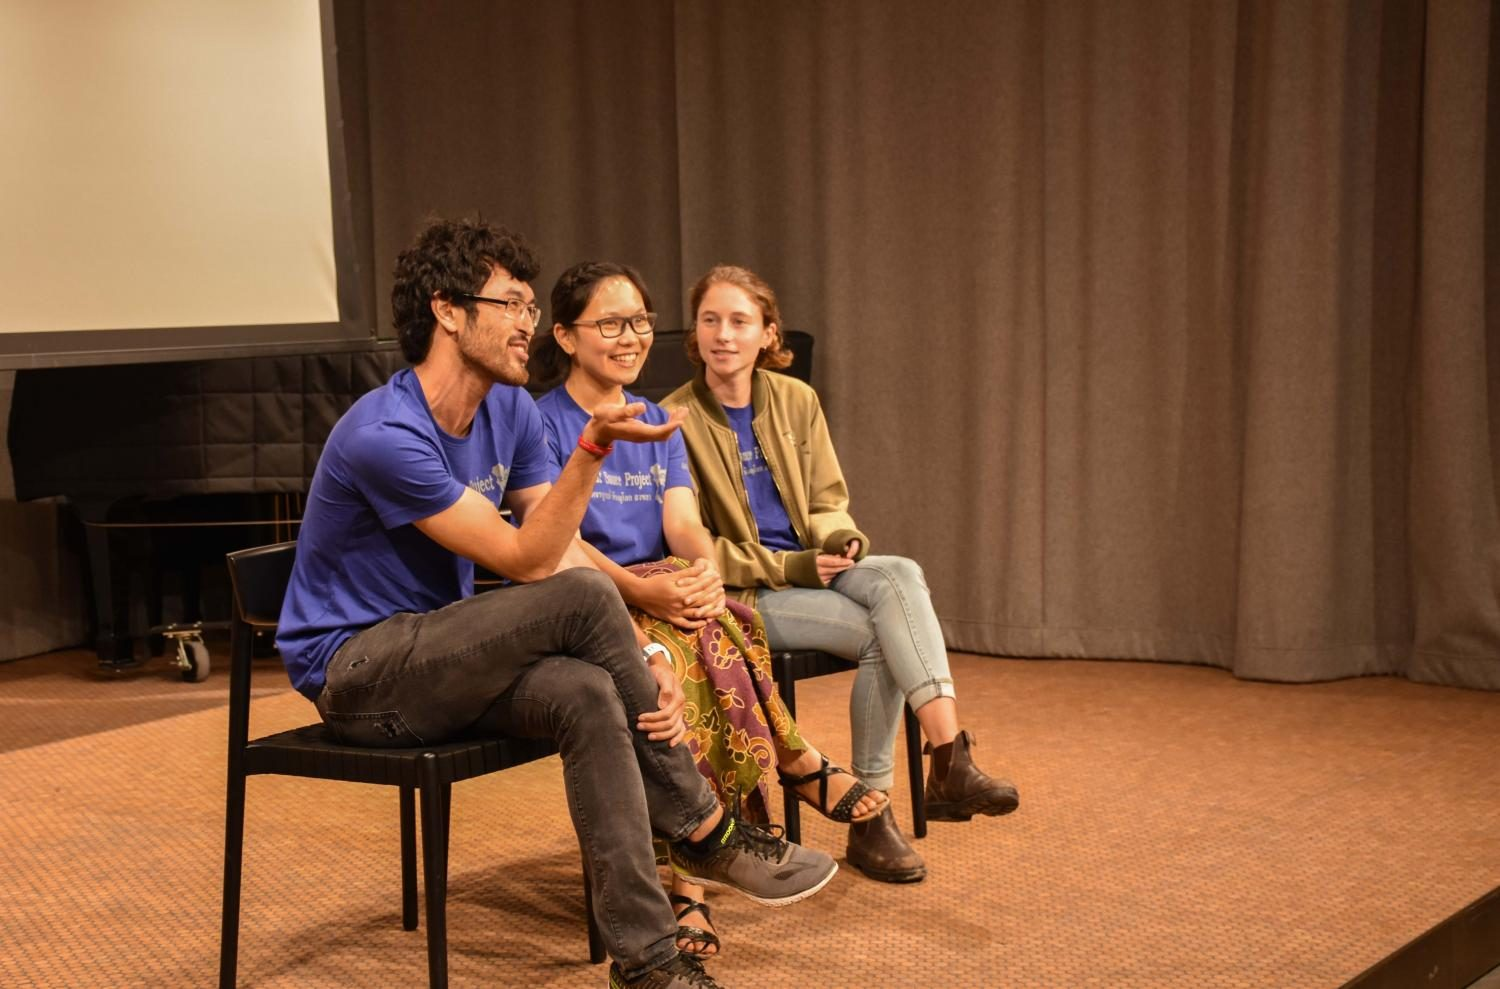 Matt Blankinship, OC '17, fifth-year Thanisa Durongkaveroj, and Anna Treidler, OC '17, spoke about their experiences in Thailand at a screening of their documentaries about Thailand's education system Saturday night.